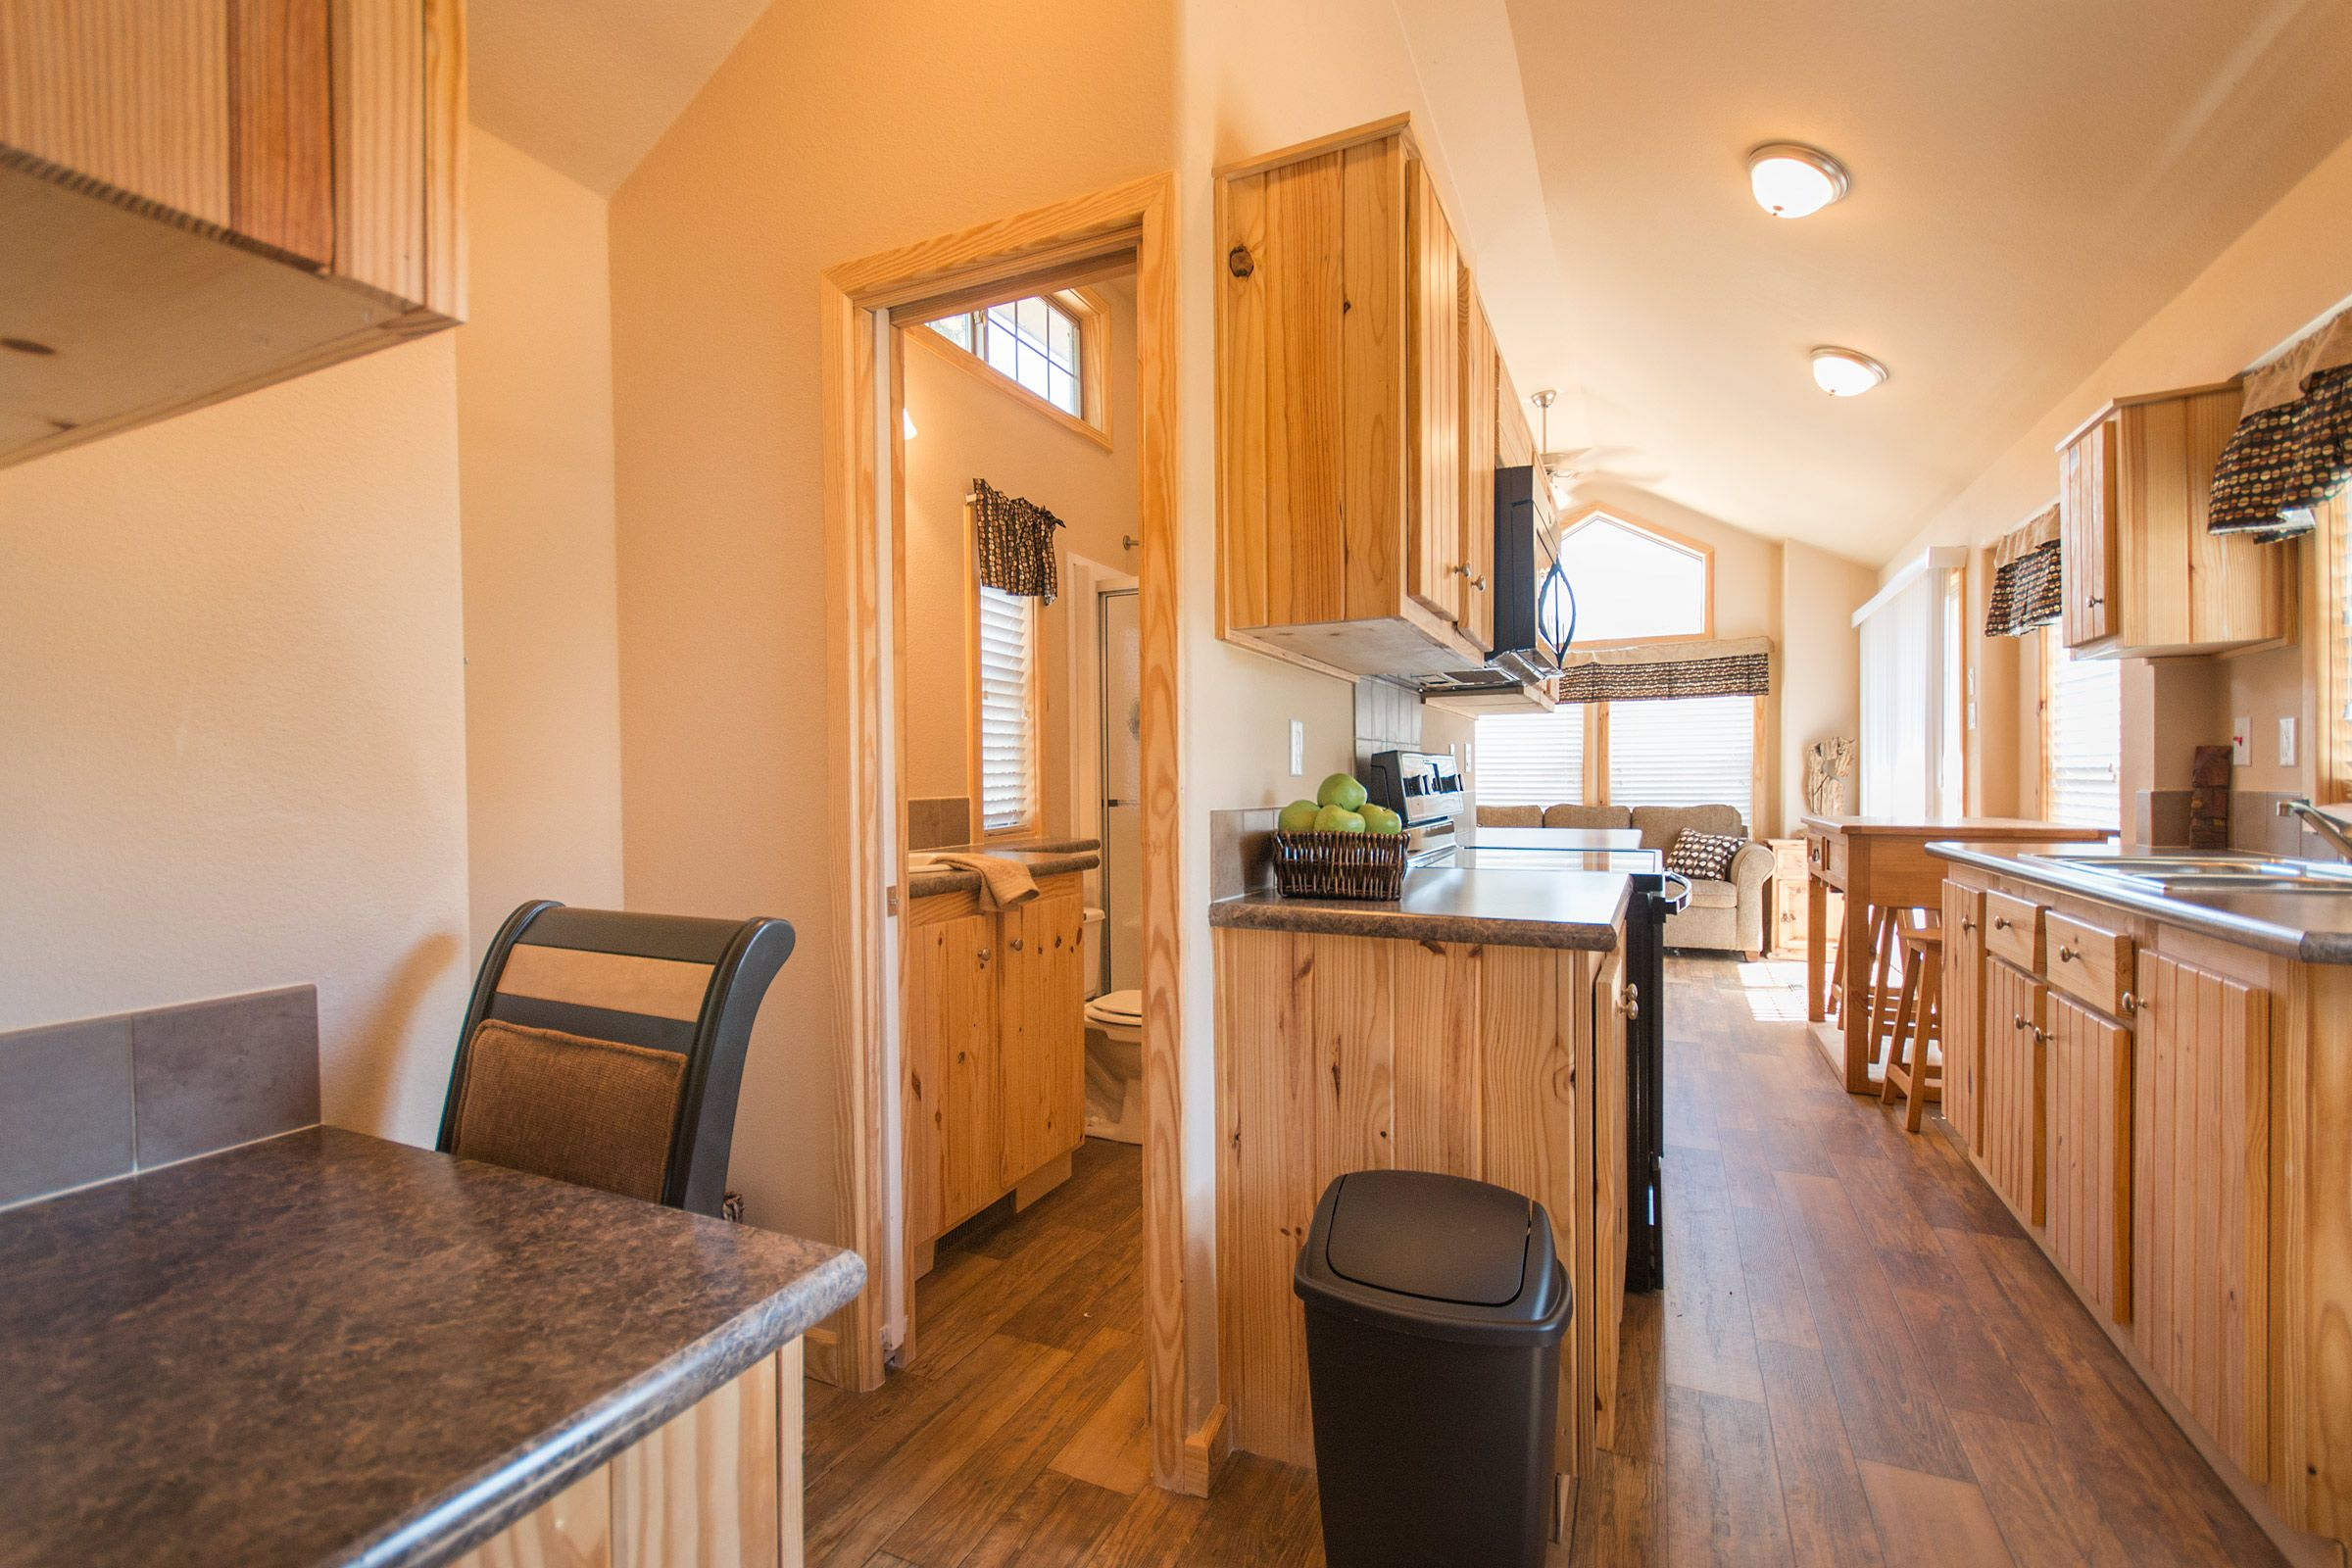 Fully equipped 1 bedroom cabin vacation rental available